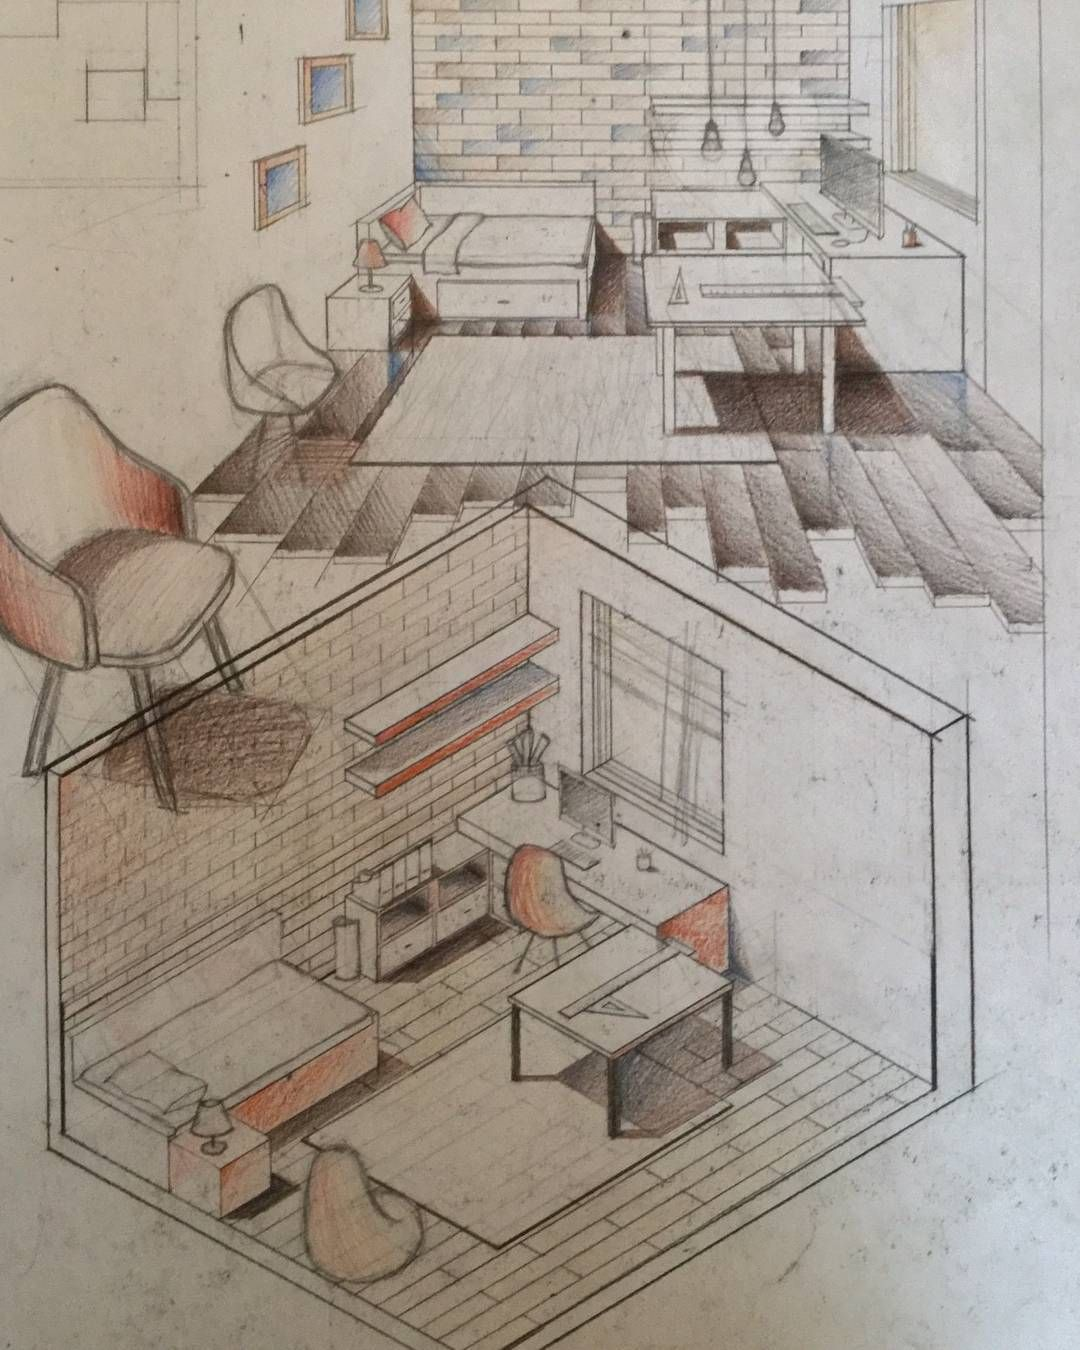 perspective drawings of buildings. #design #drawing #architecture #art #sketching #buildings #perspective\u2026 Perspective Drawings Of Buildings